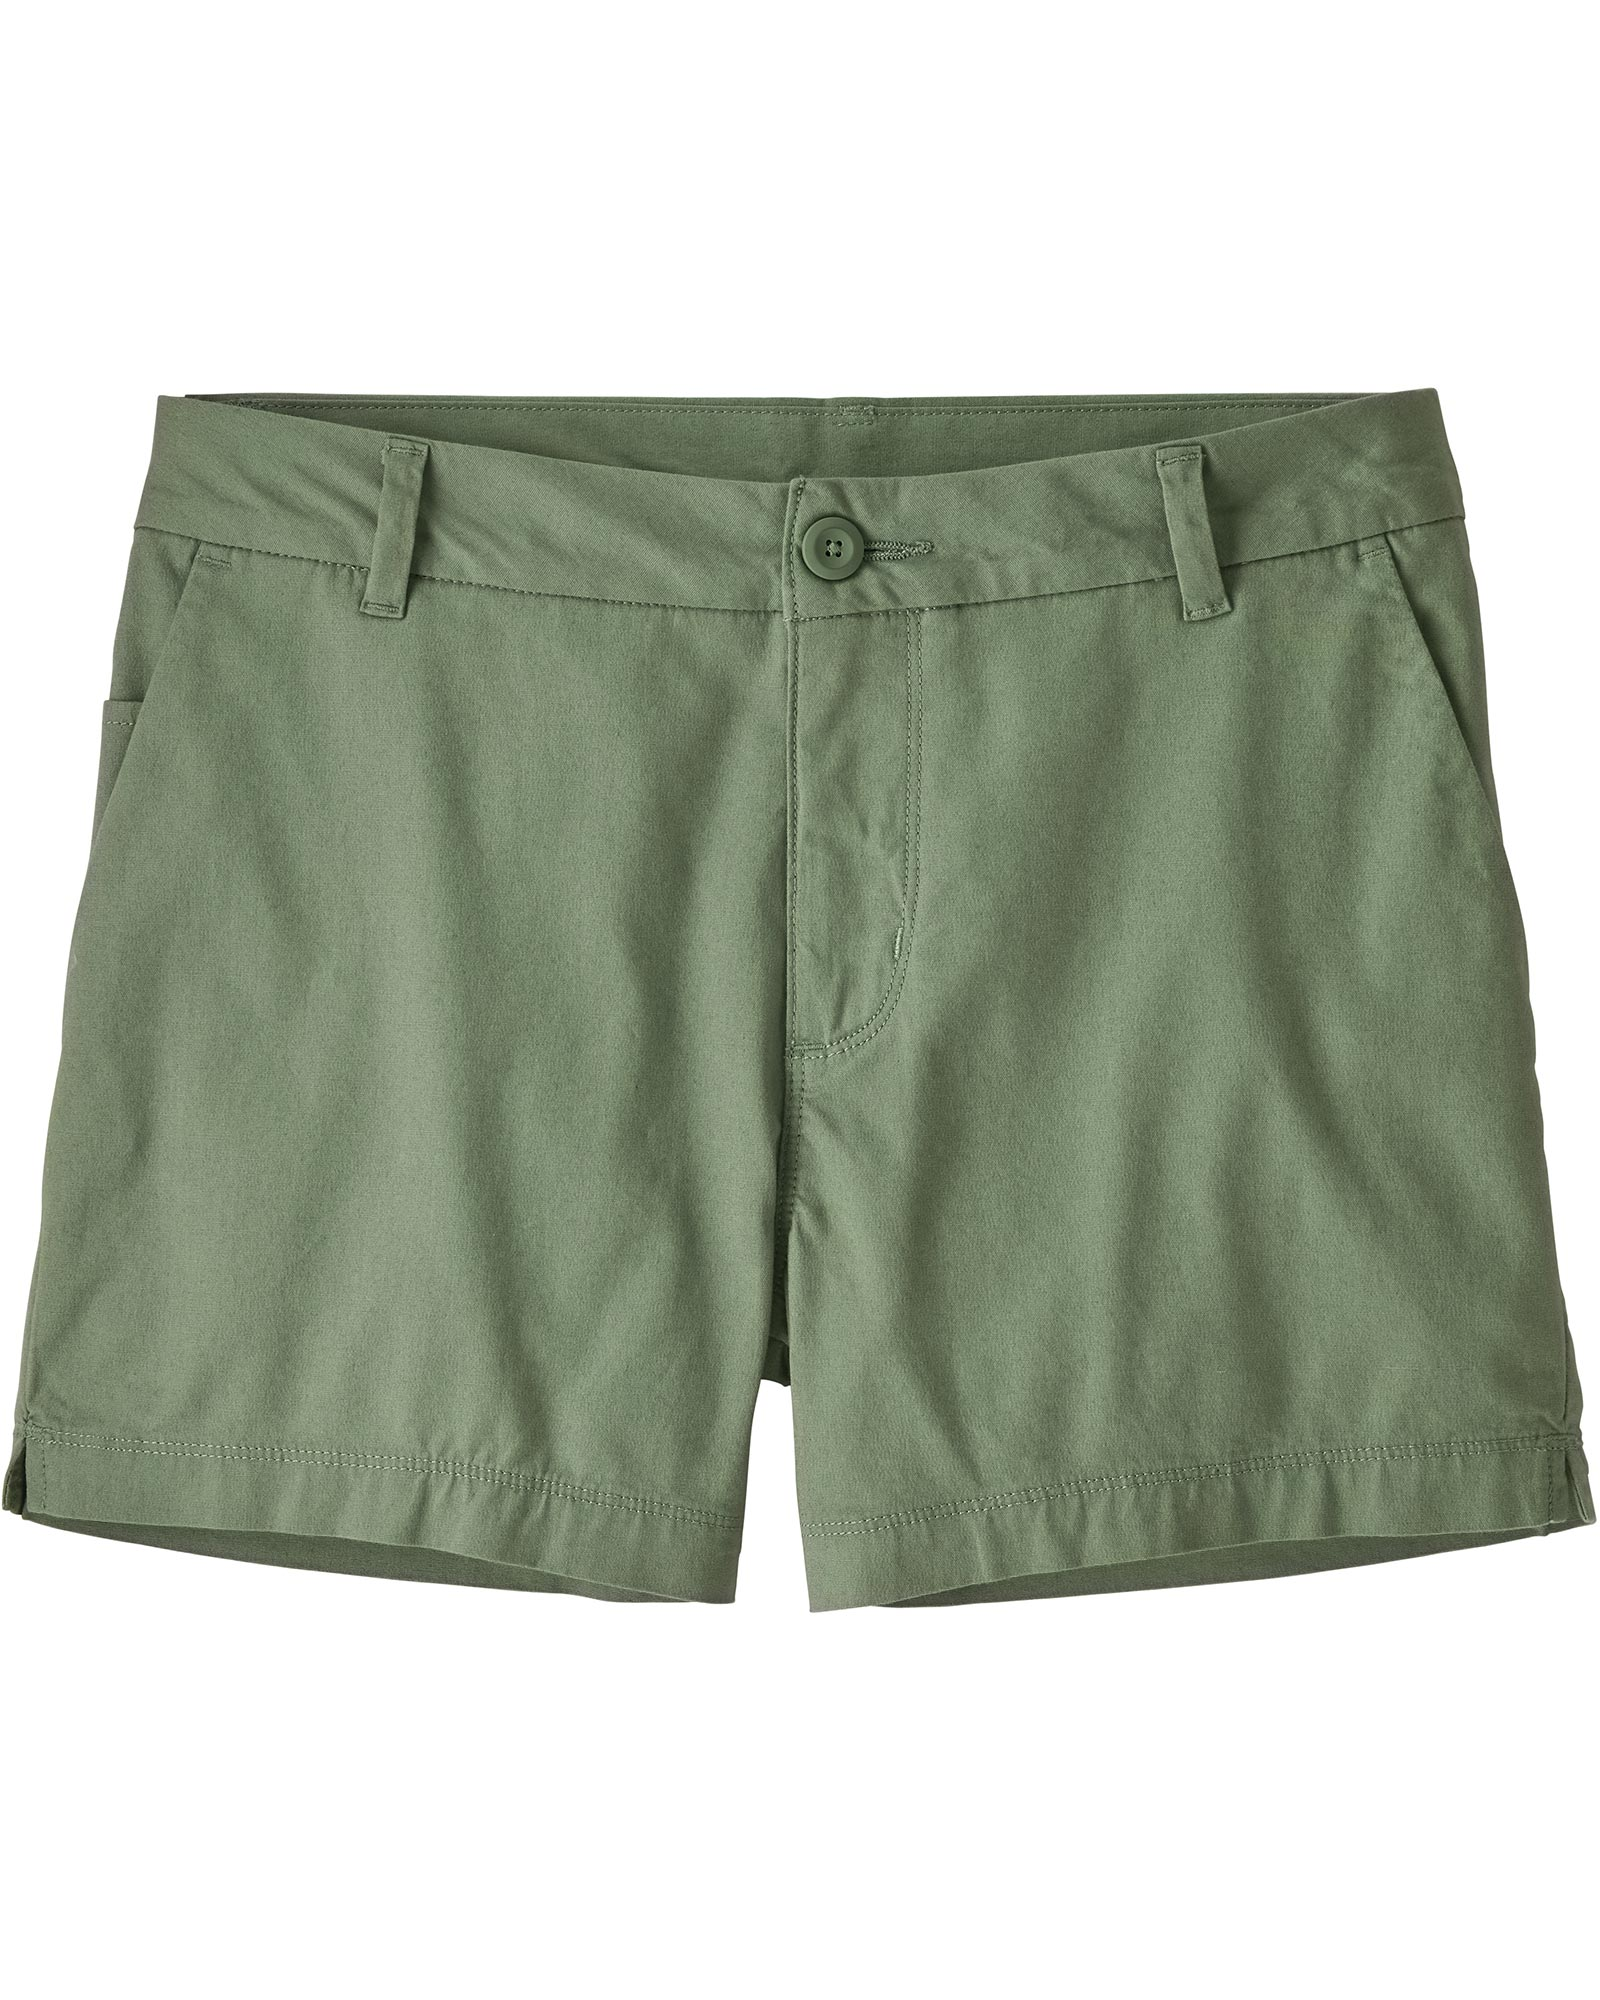 Patagonia Women's Stretch All-Wear Shorts 0